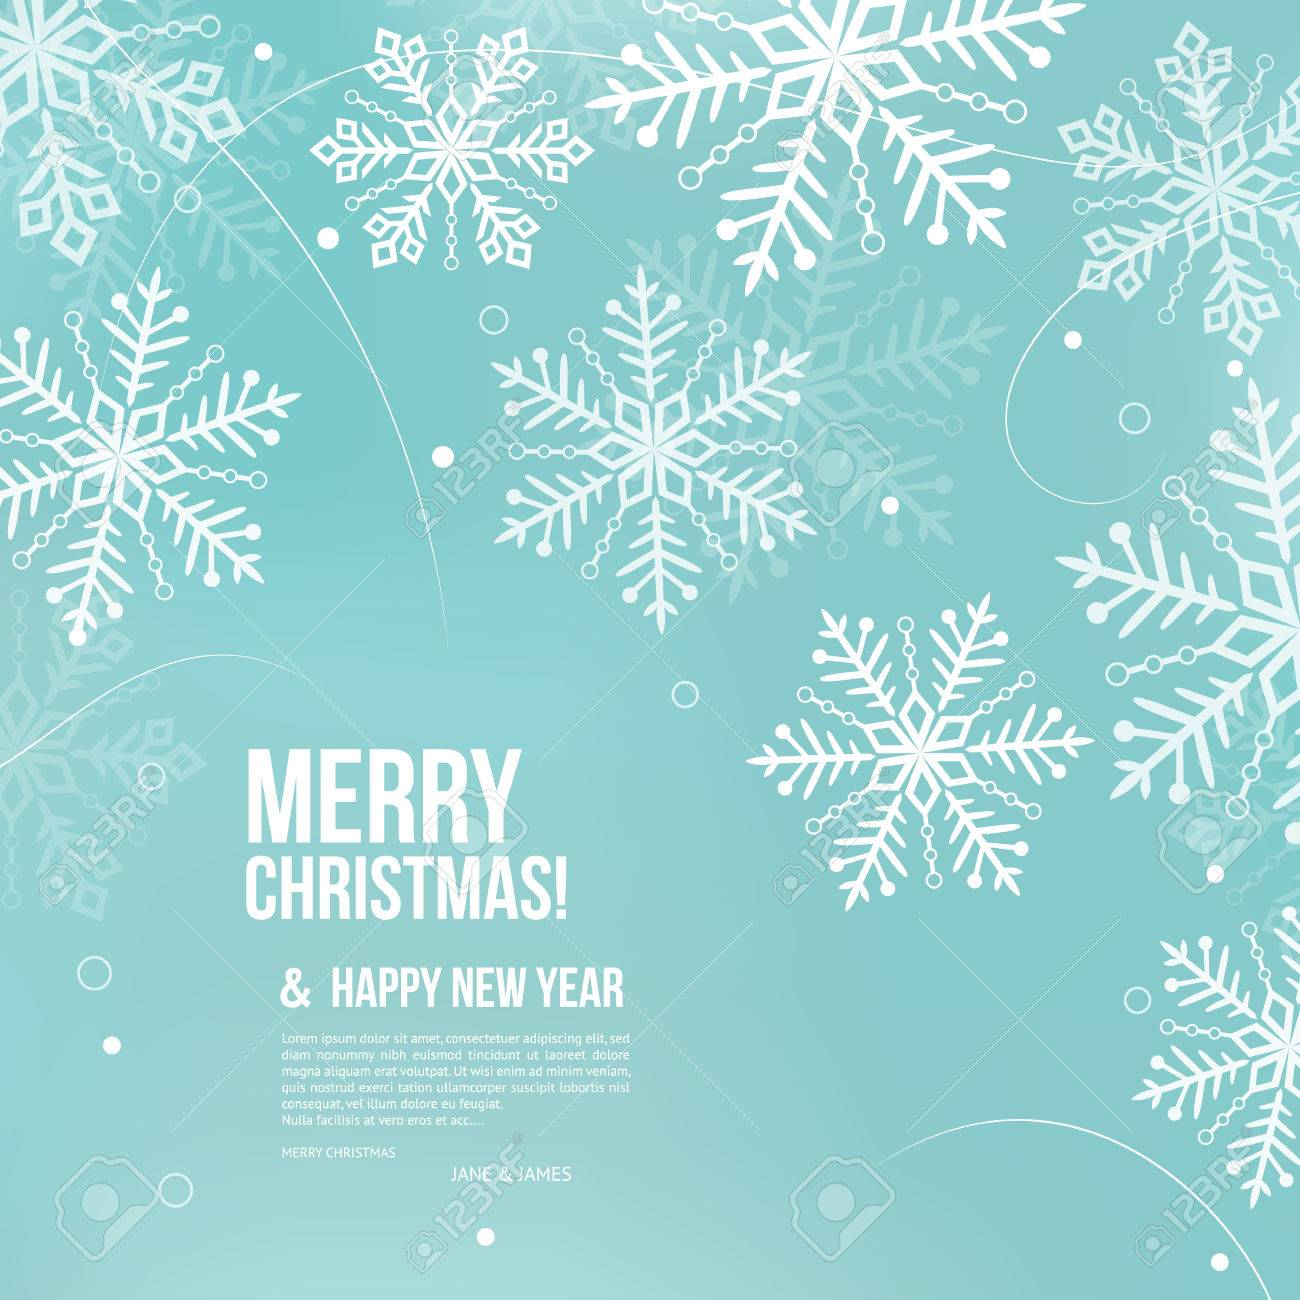 Abstract Christmas card with snowflakes and wishing text. - 48544824